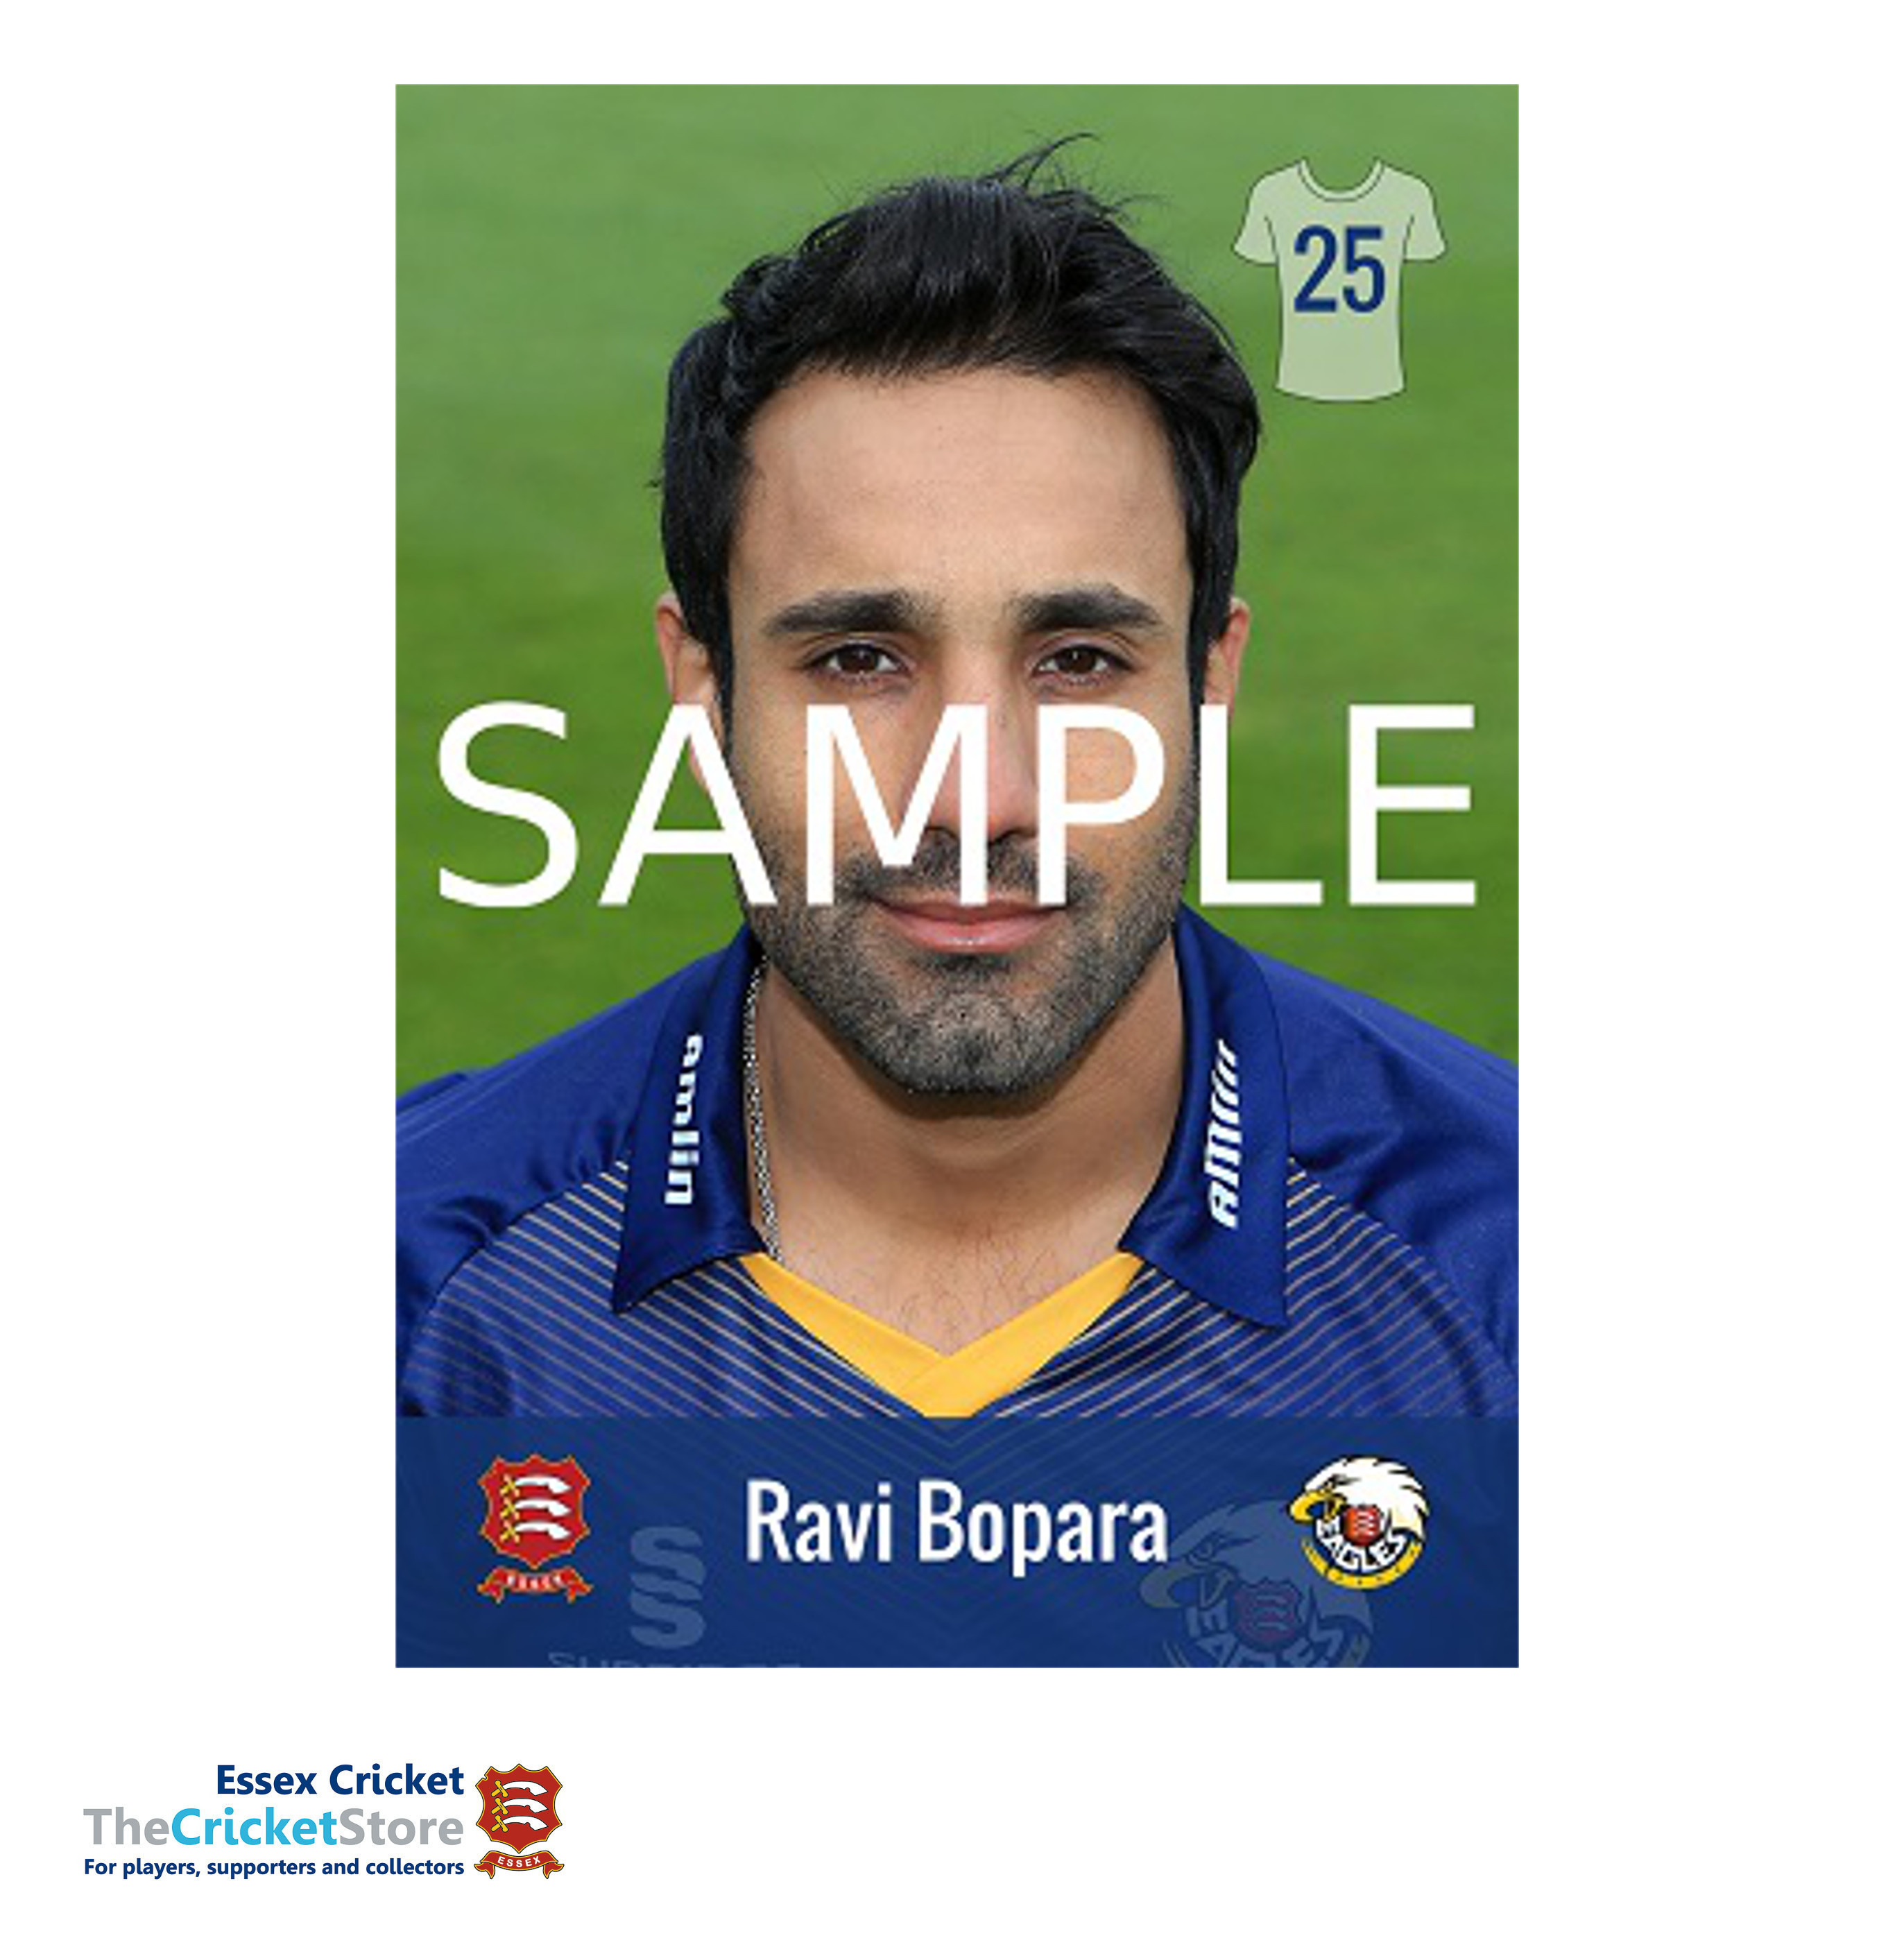 Player Profile Postcard – The Cricket Store at Essex Cricket